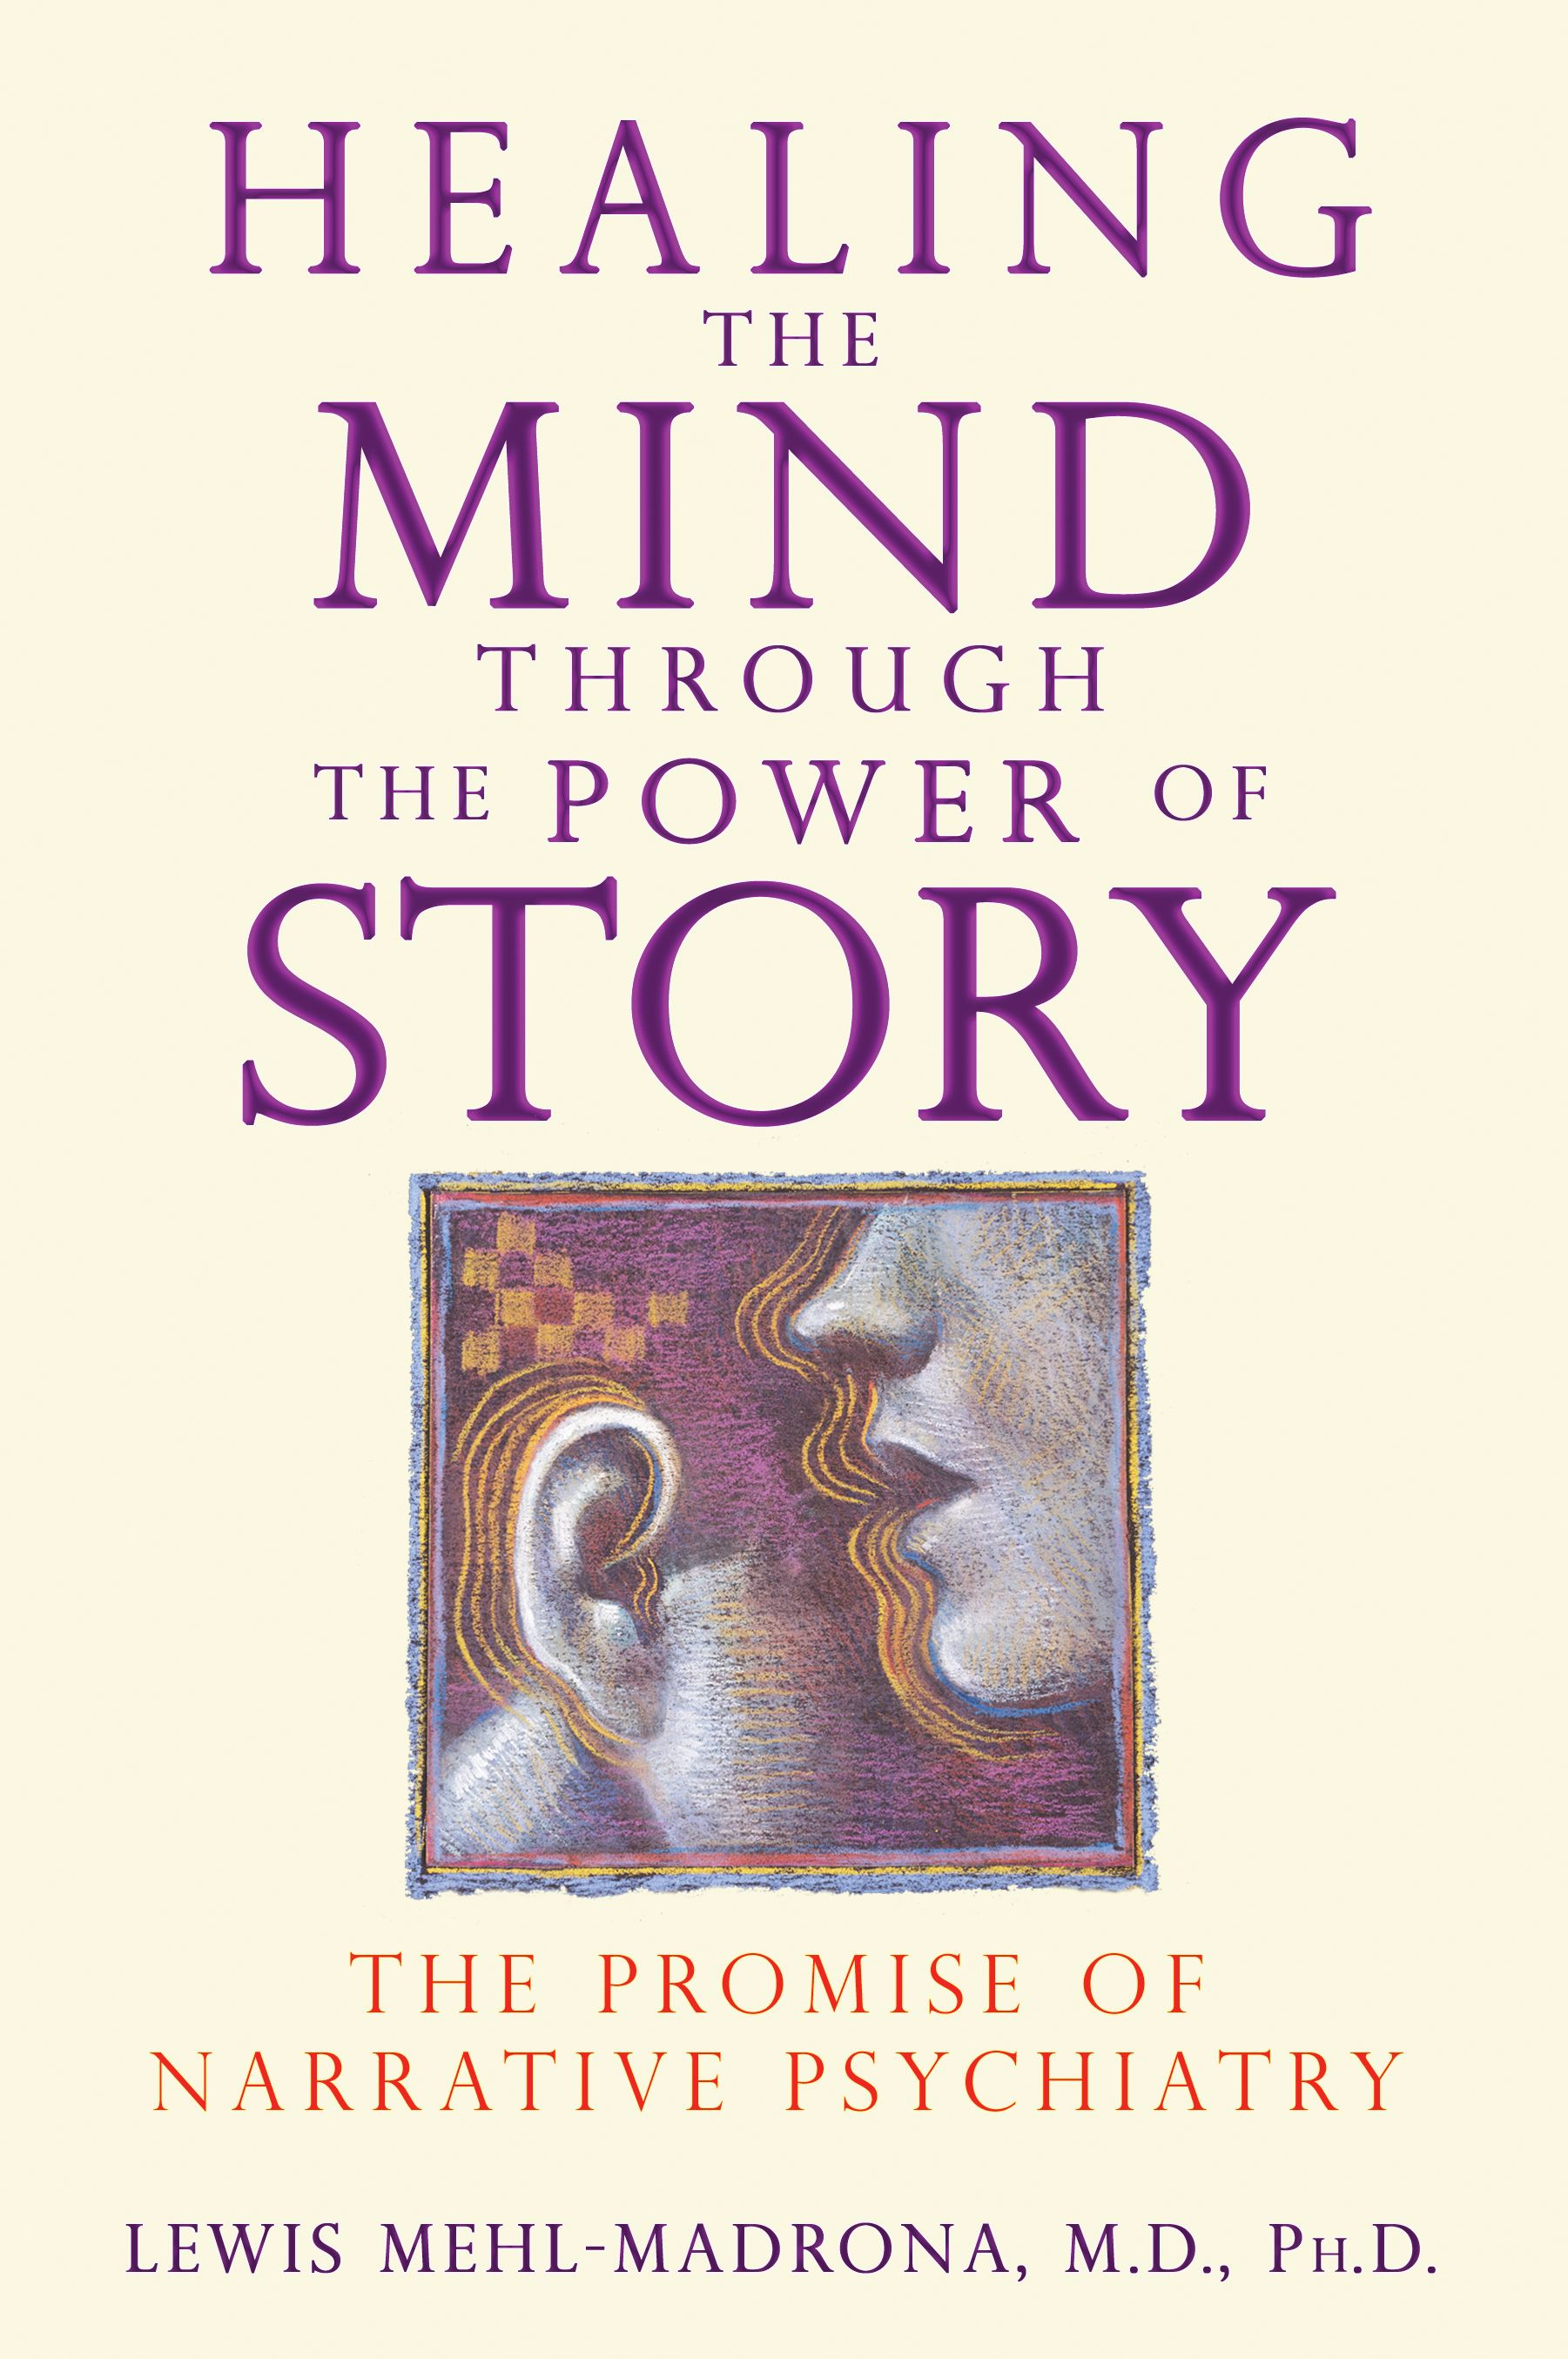 Healing-the-mind-through-the-power-of-story-9781591430957_hr